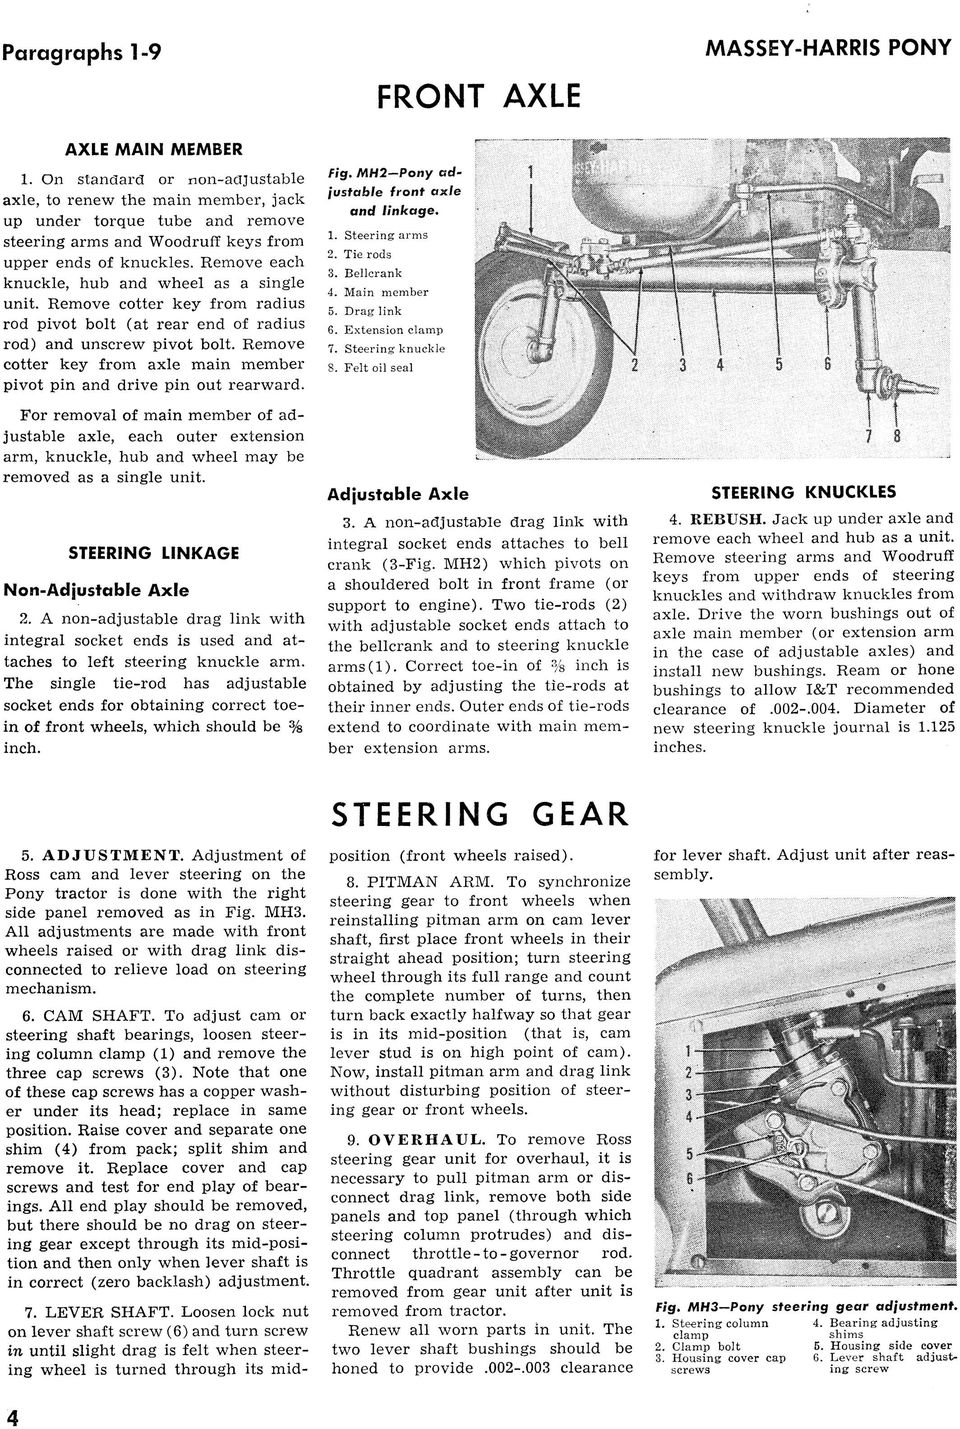 SHOP MANUAL MEY-HARRIS - PDF on gmc fuse box diagrams, smart car diagrams, motor diagrams, switch diagrams, battery diagrams, hvac diagrams, lighting diagrams, snatch block diagrams, engine diagrams, sincgars radio configurations diagrams, troubleshooting diagrams, electrical diagrams, led circuit diagrams, friendship bracelet diagrams, transformer diagrams, honda motorcycle repair diagrams, pinout diagrams, electronic circuit diagrams, series and parallel circuits diagrams, internet of things diagrams,